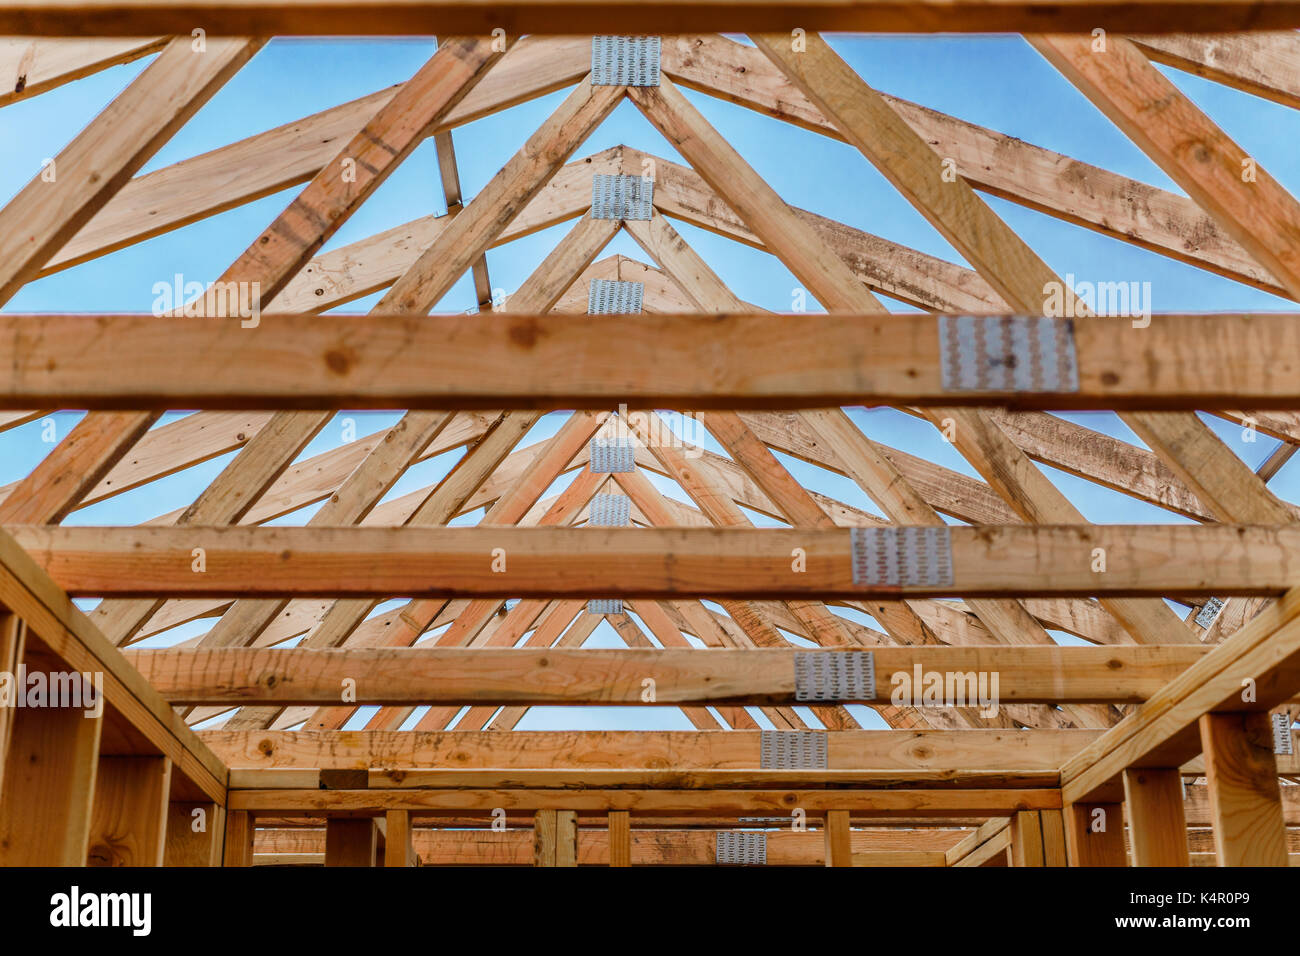 Rough Framing Stock Photos & Rough Framing Stock Images - Alamy